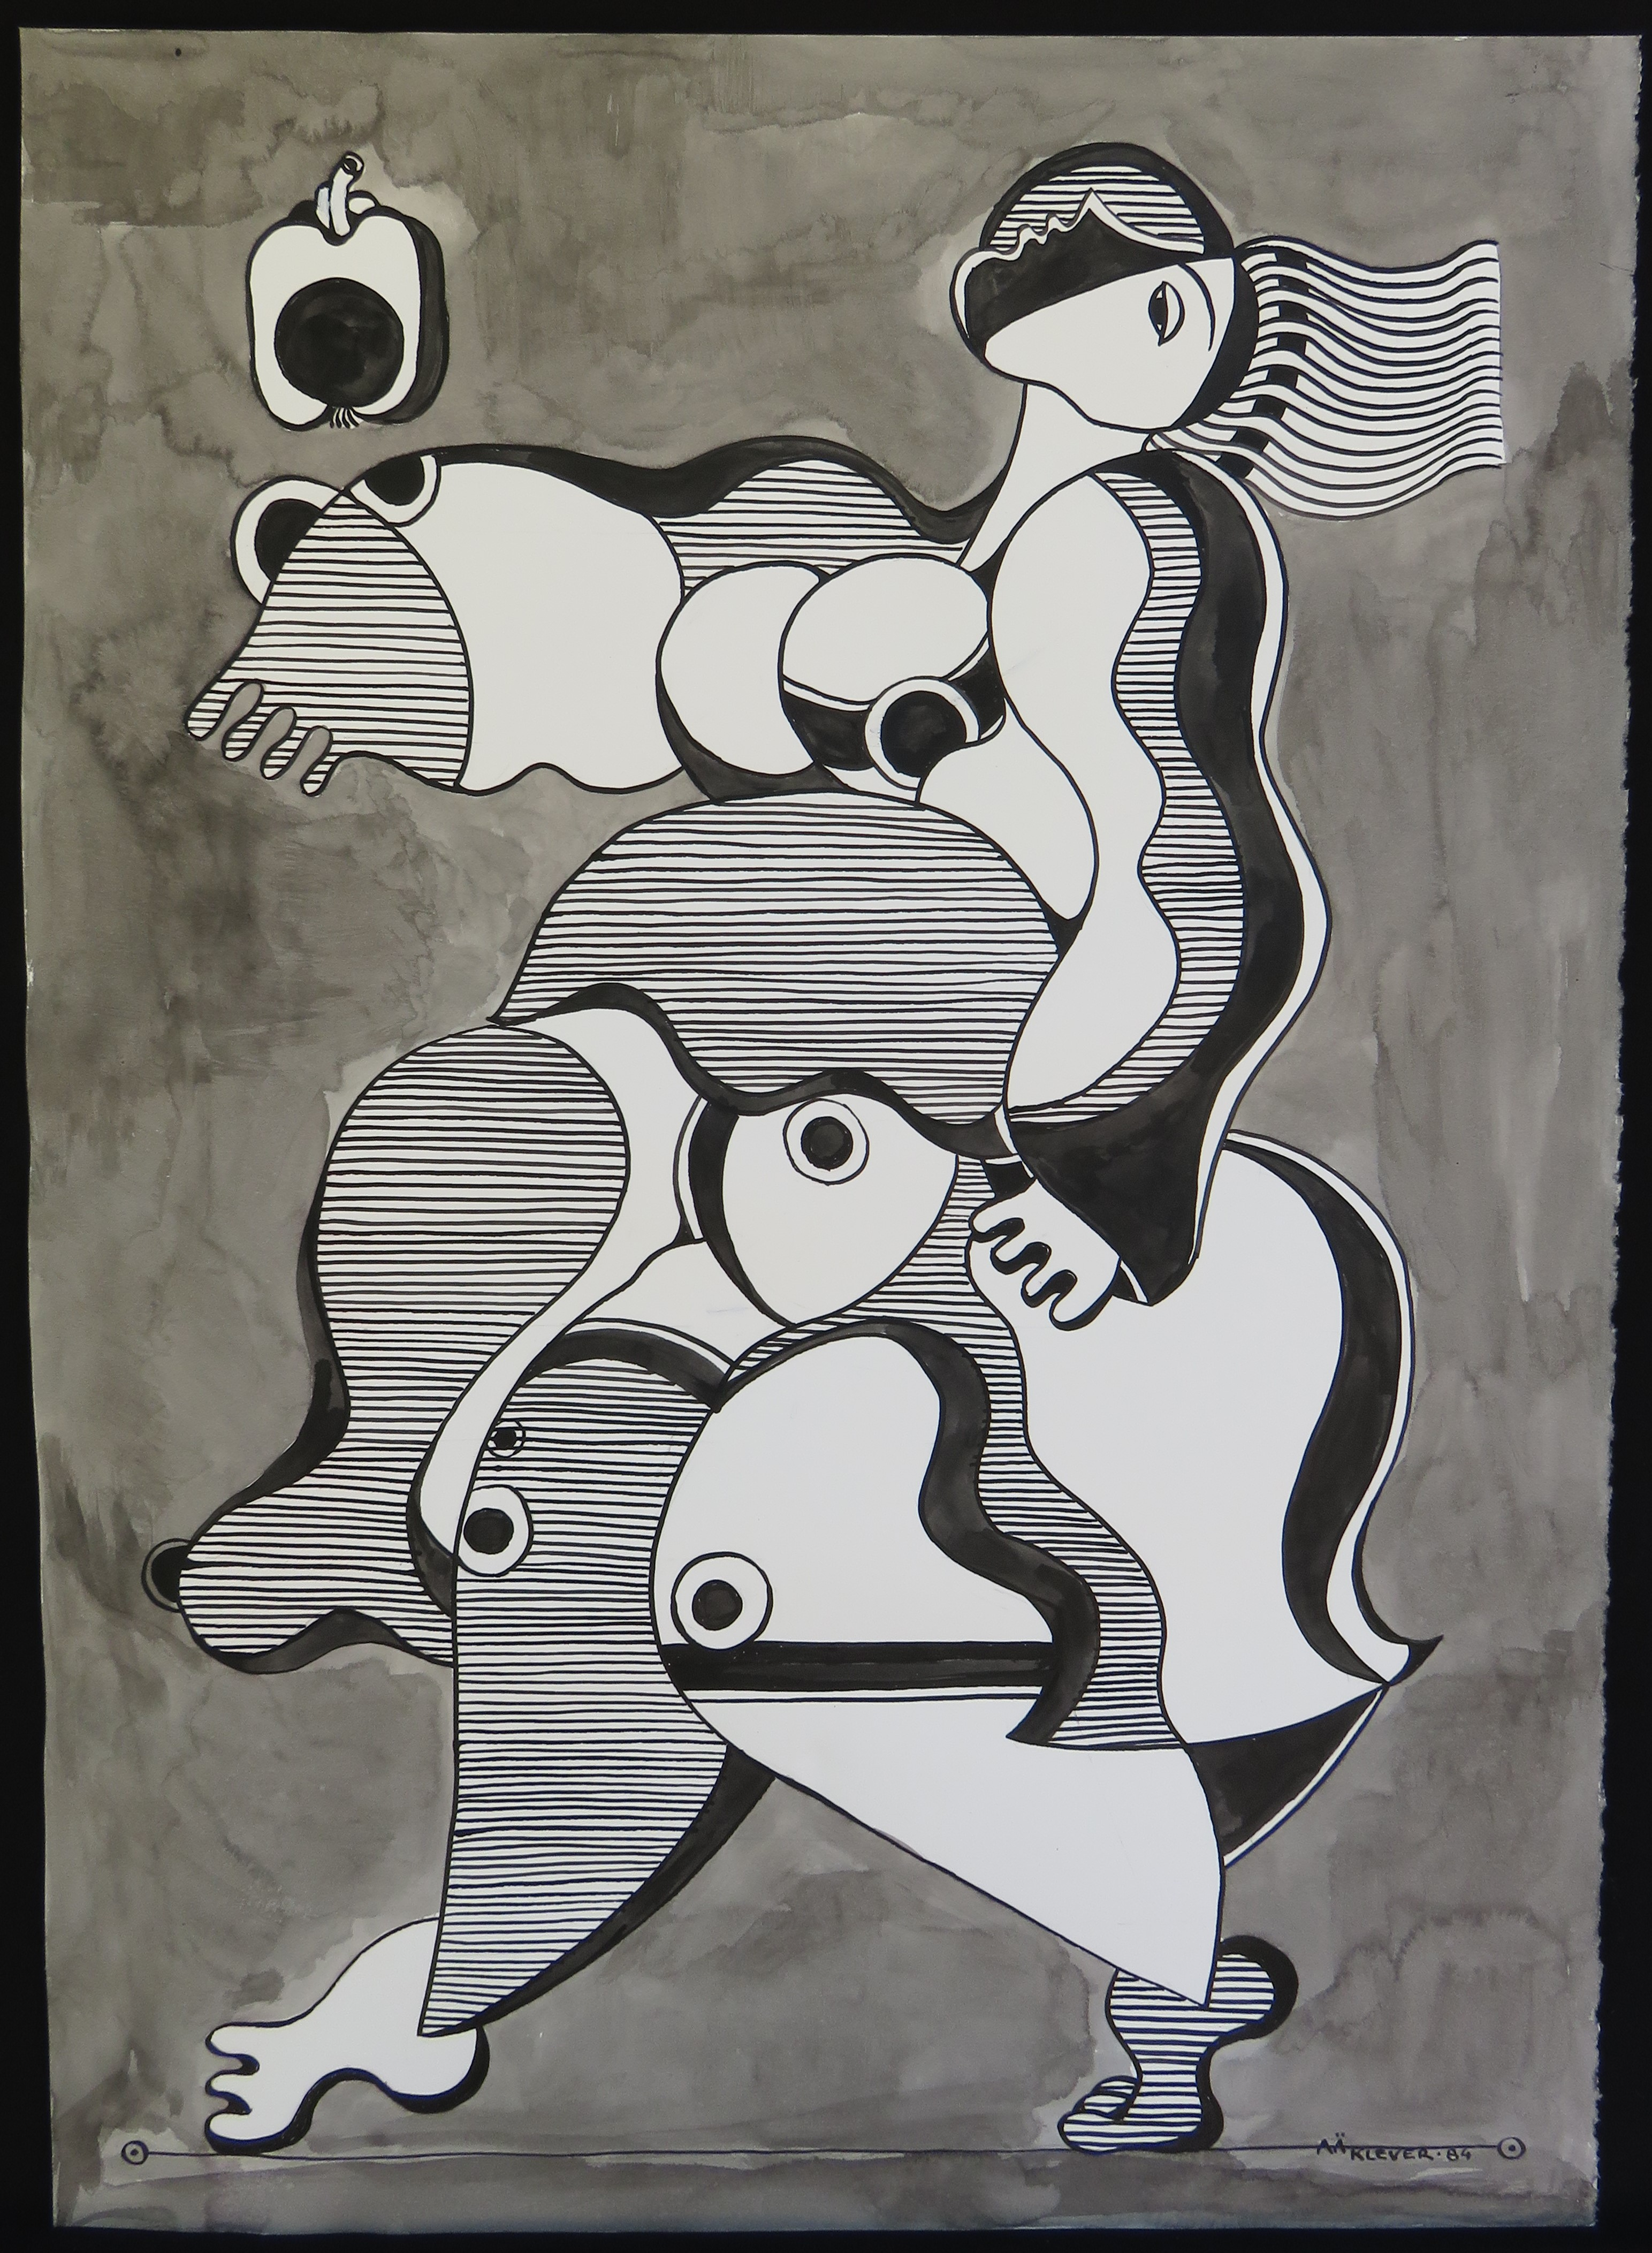 Untitled 8582 artwork by Val Klever - art listed for sale on Artplode